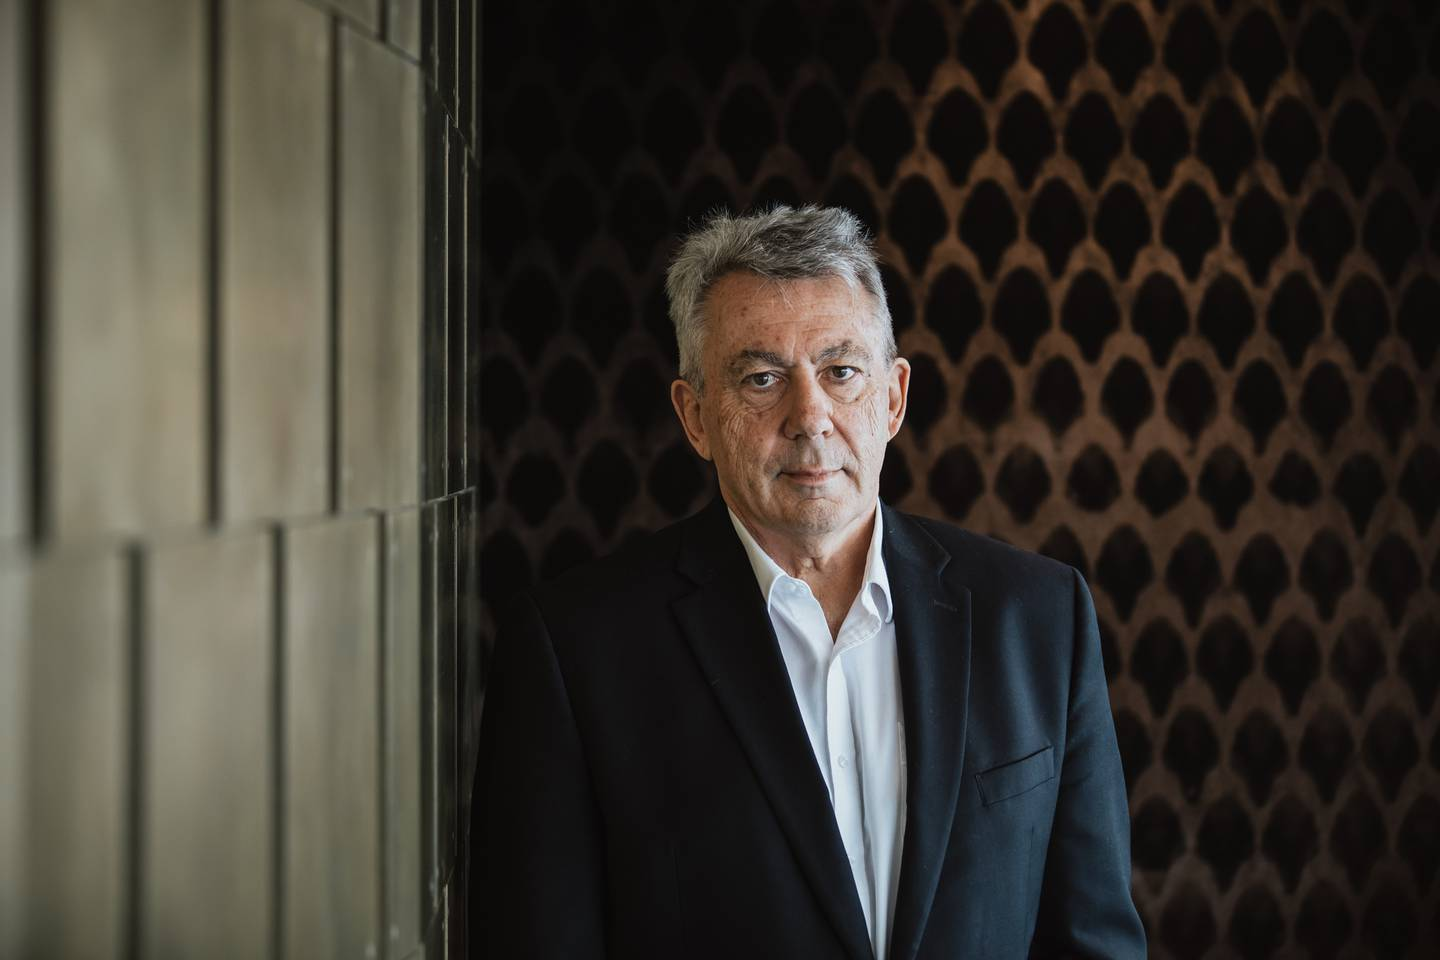 SkyCity chair Rob Campbell. Photo / Supplied